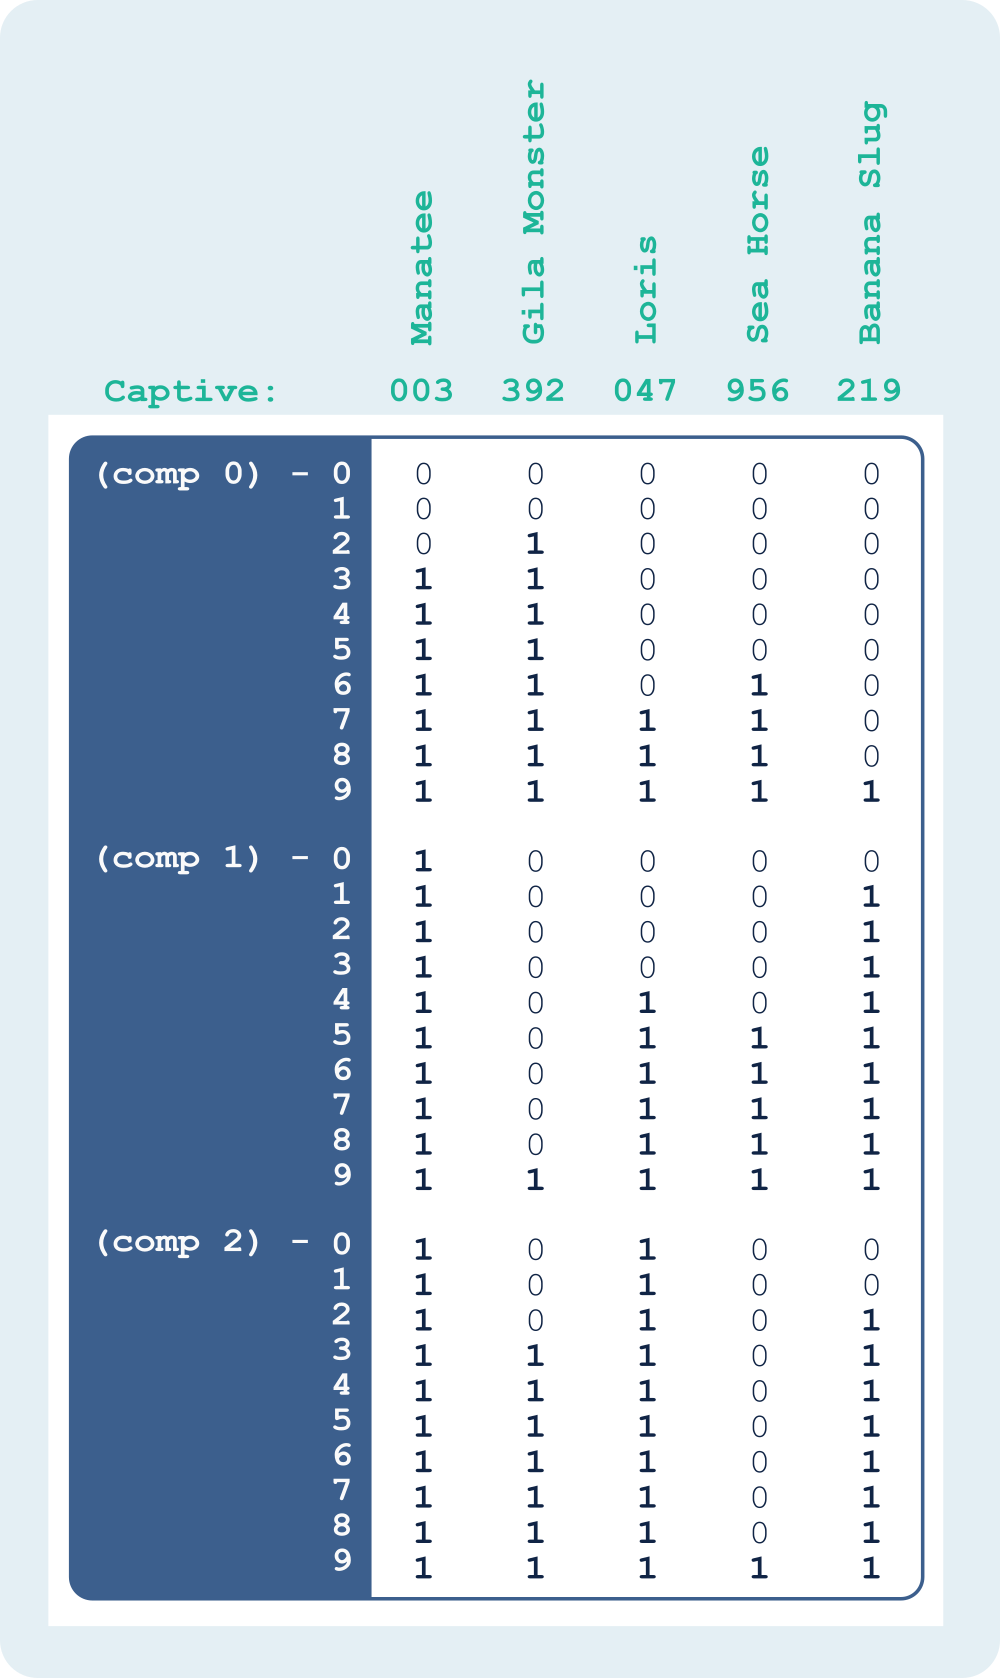 Captivity Counts as a Range-Encoded, Base-10, Bit-sliced Index